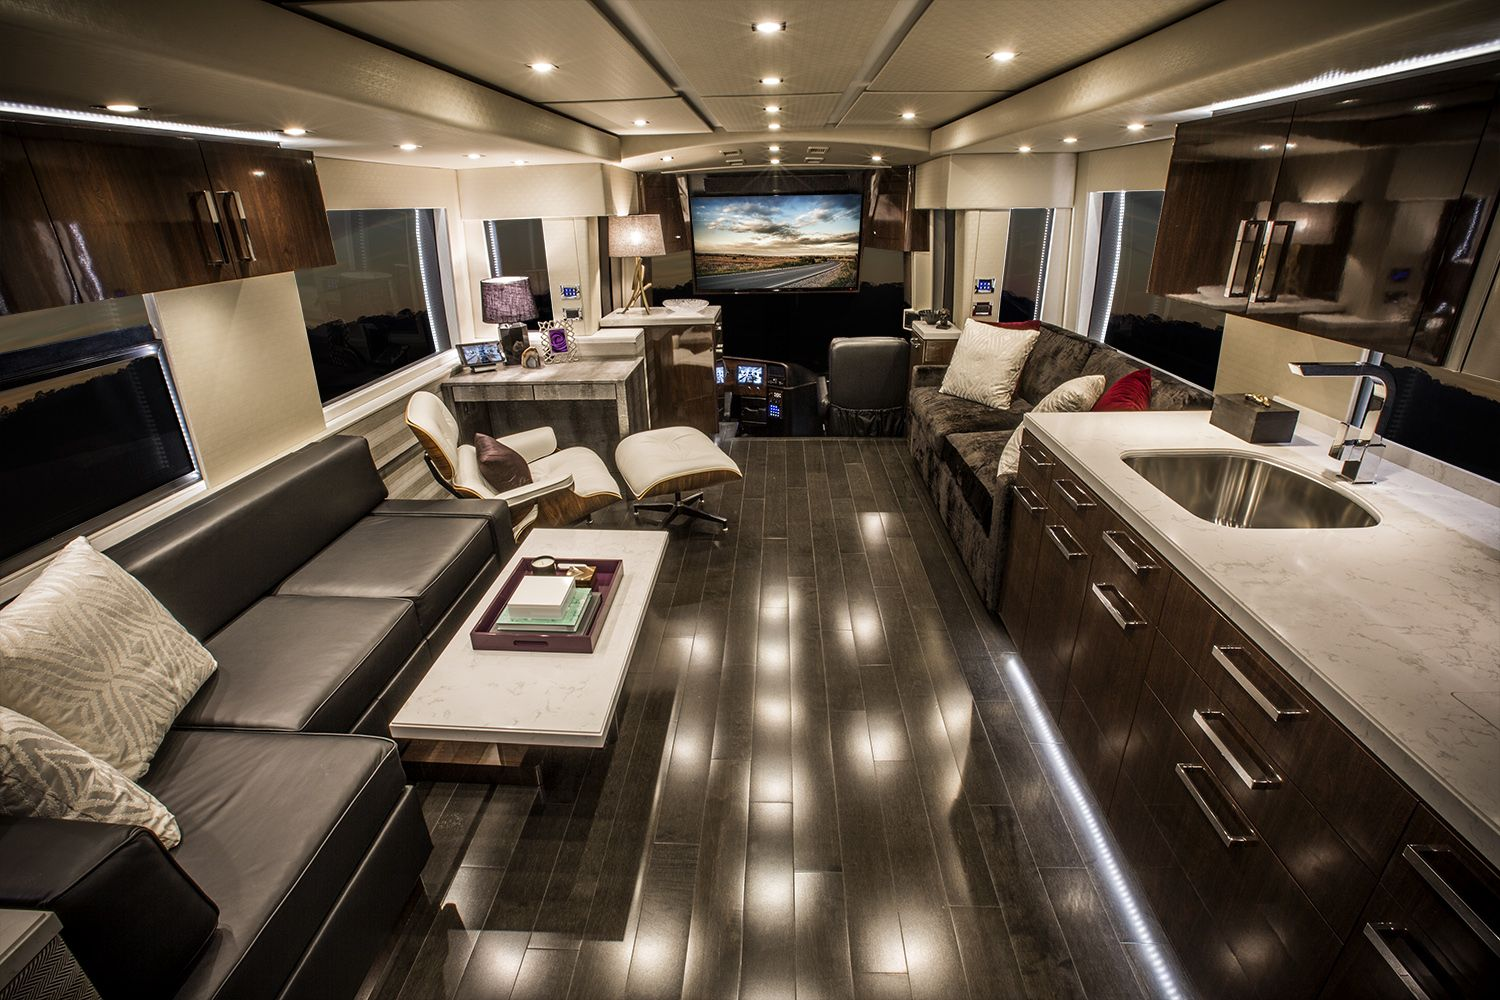 Nascar Coach 1 Cabin Fever Communications Motorhomes